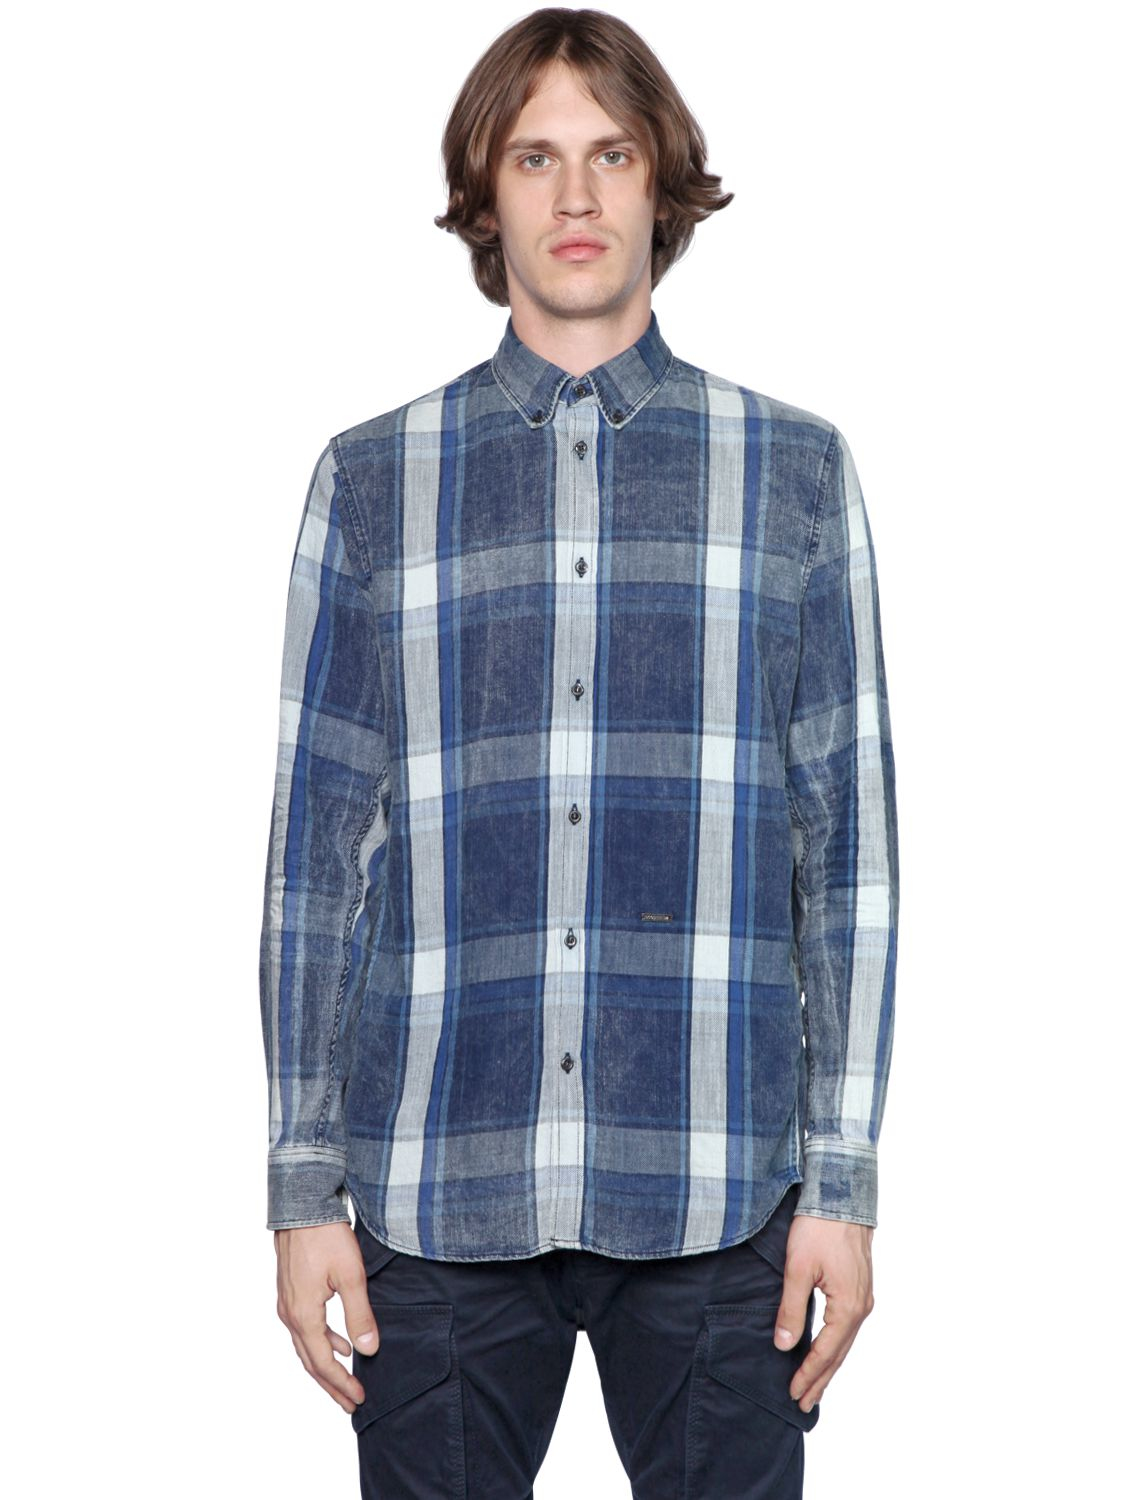 At Express, we have men's casual shirts that are relaxed enough for a weekend around the house, yet sharp enough to still look great out and about. With so many styles of shirts, including short sleeve, long sleeve, and pull overs, there is something for every taste.